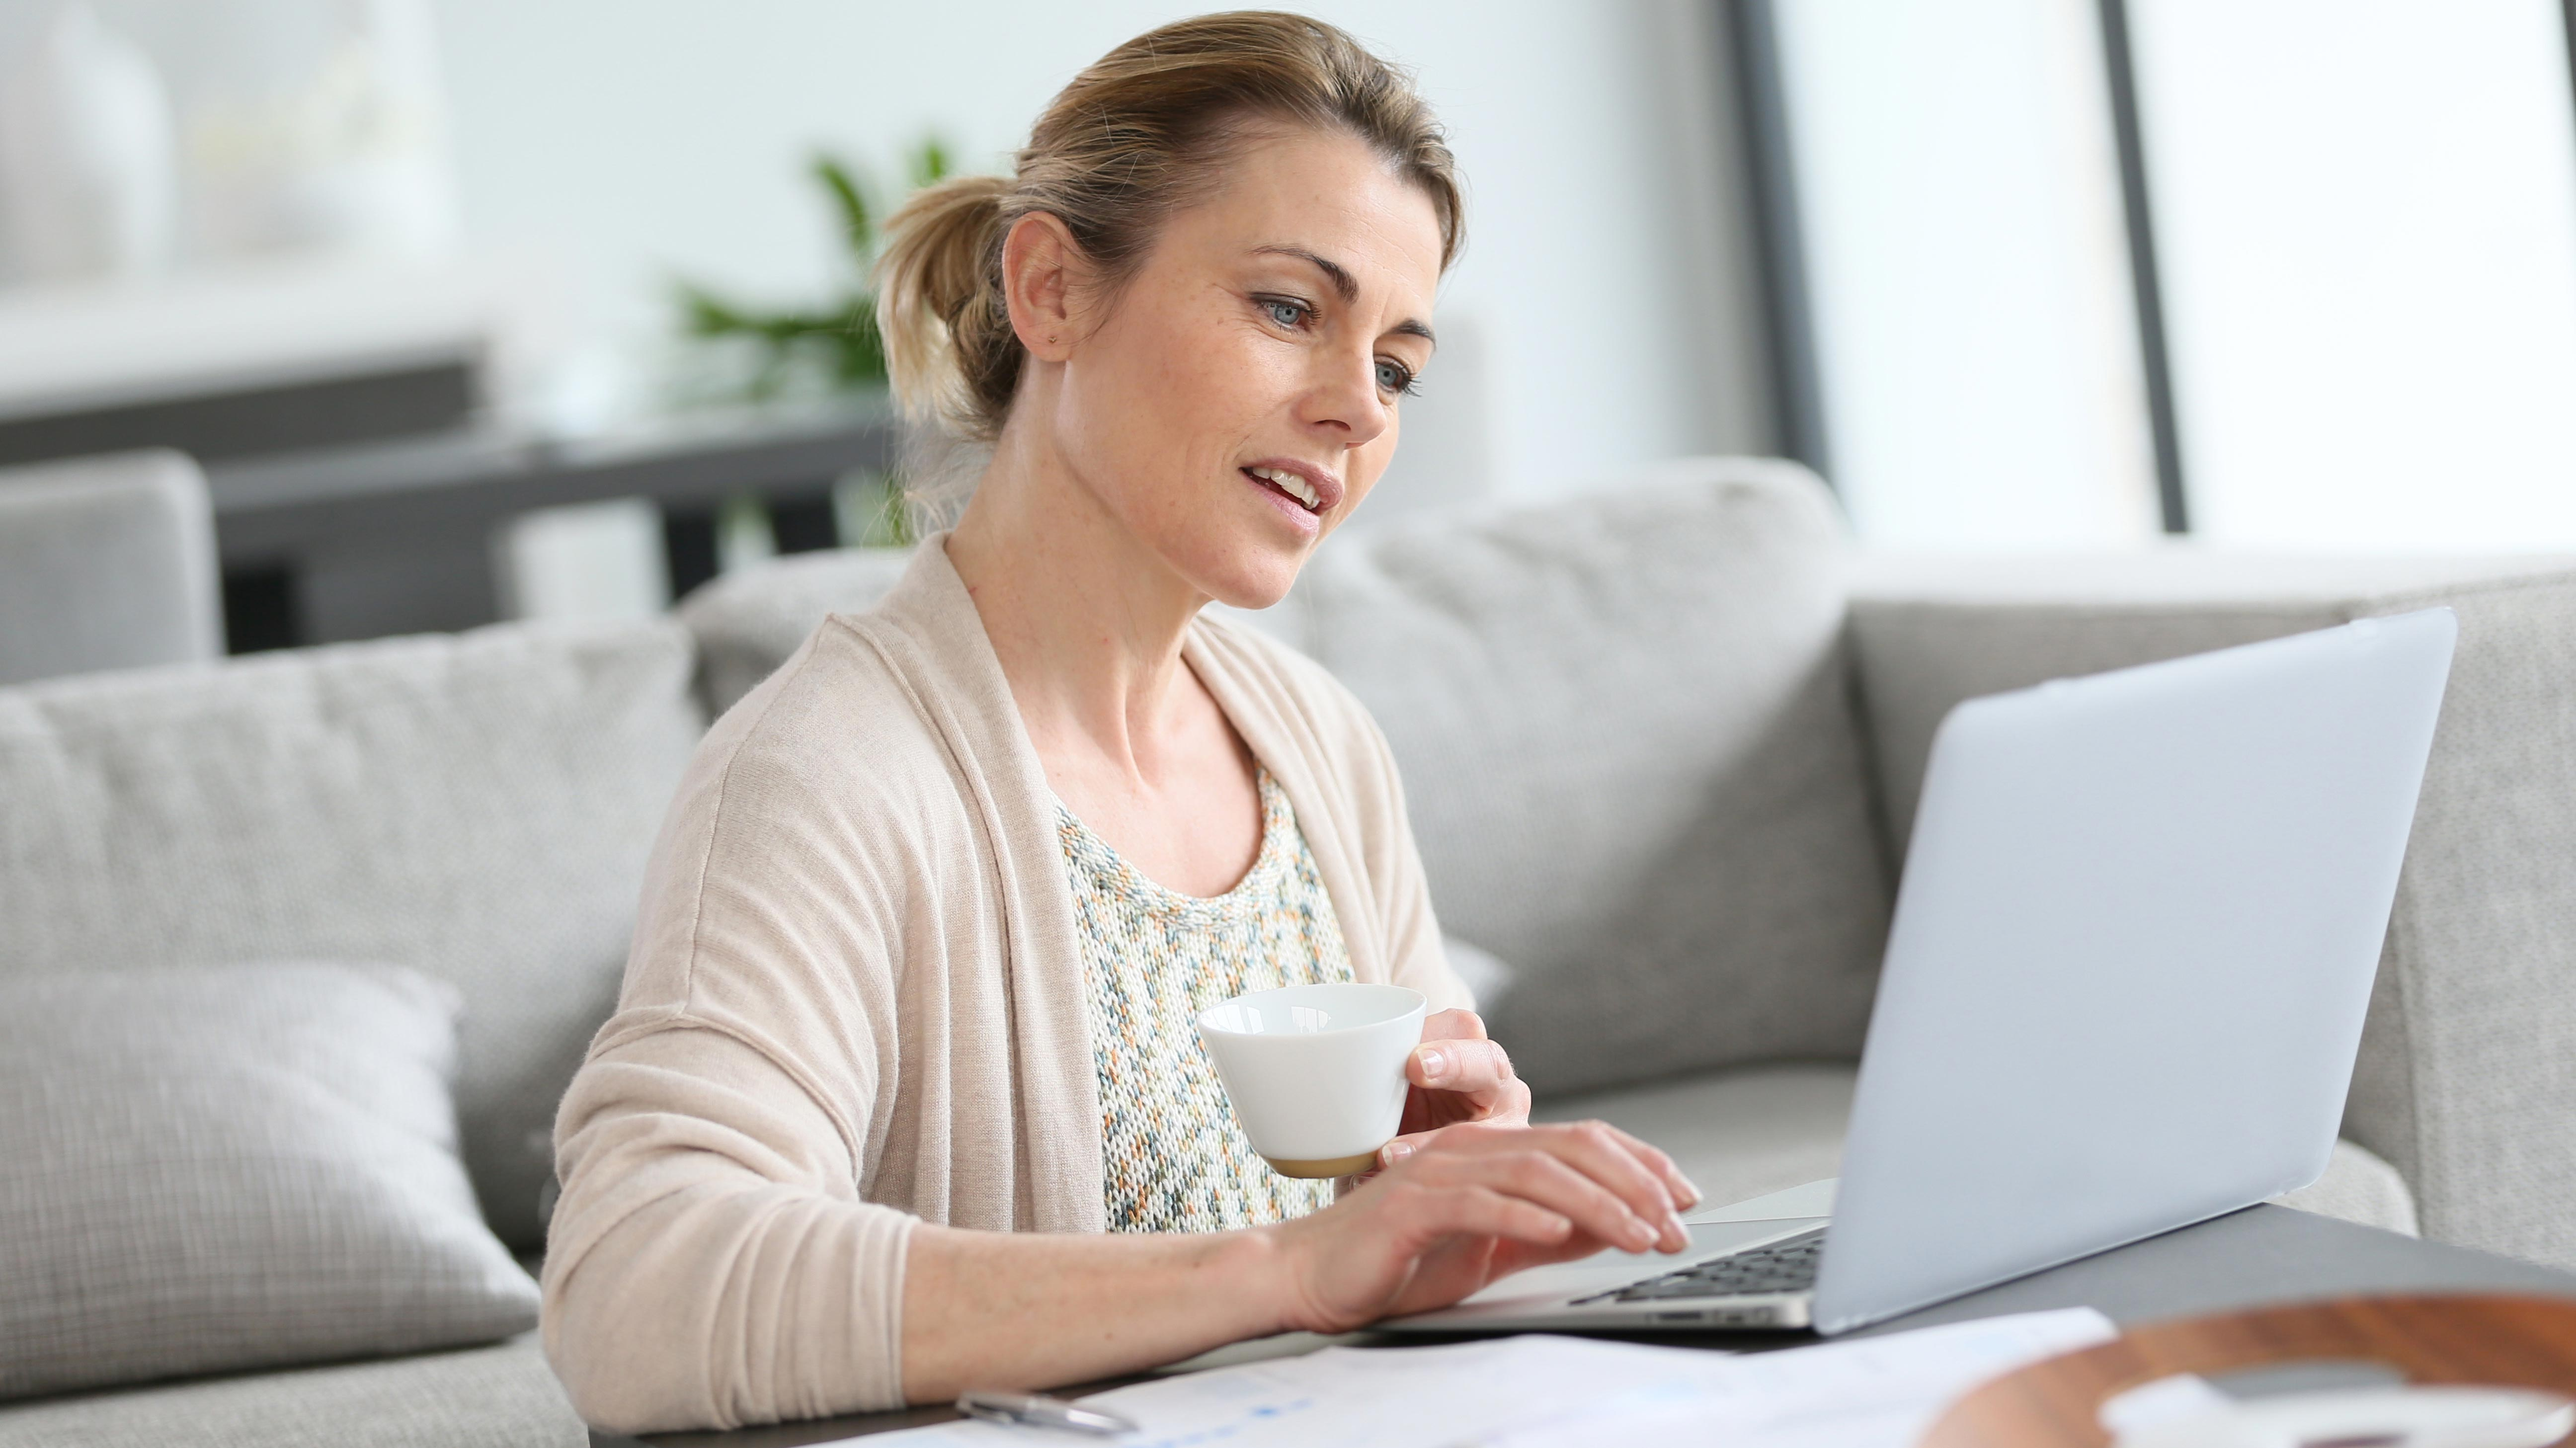 45% more women are working from home now than in 2005